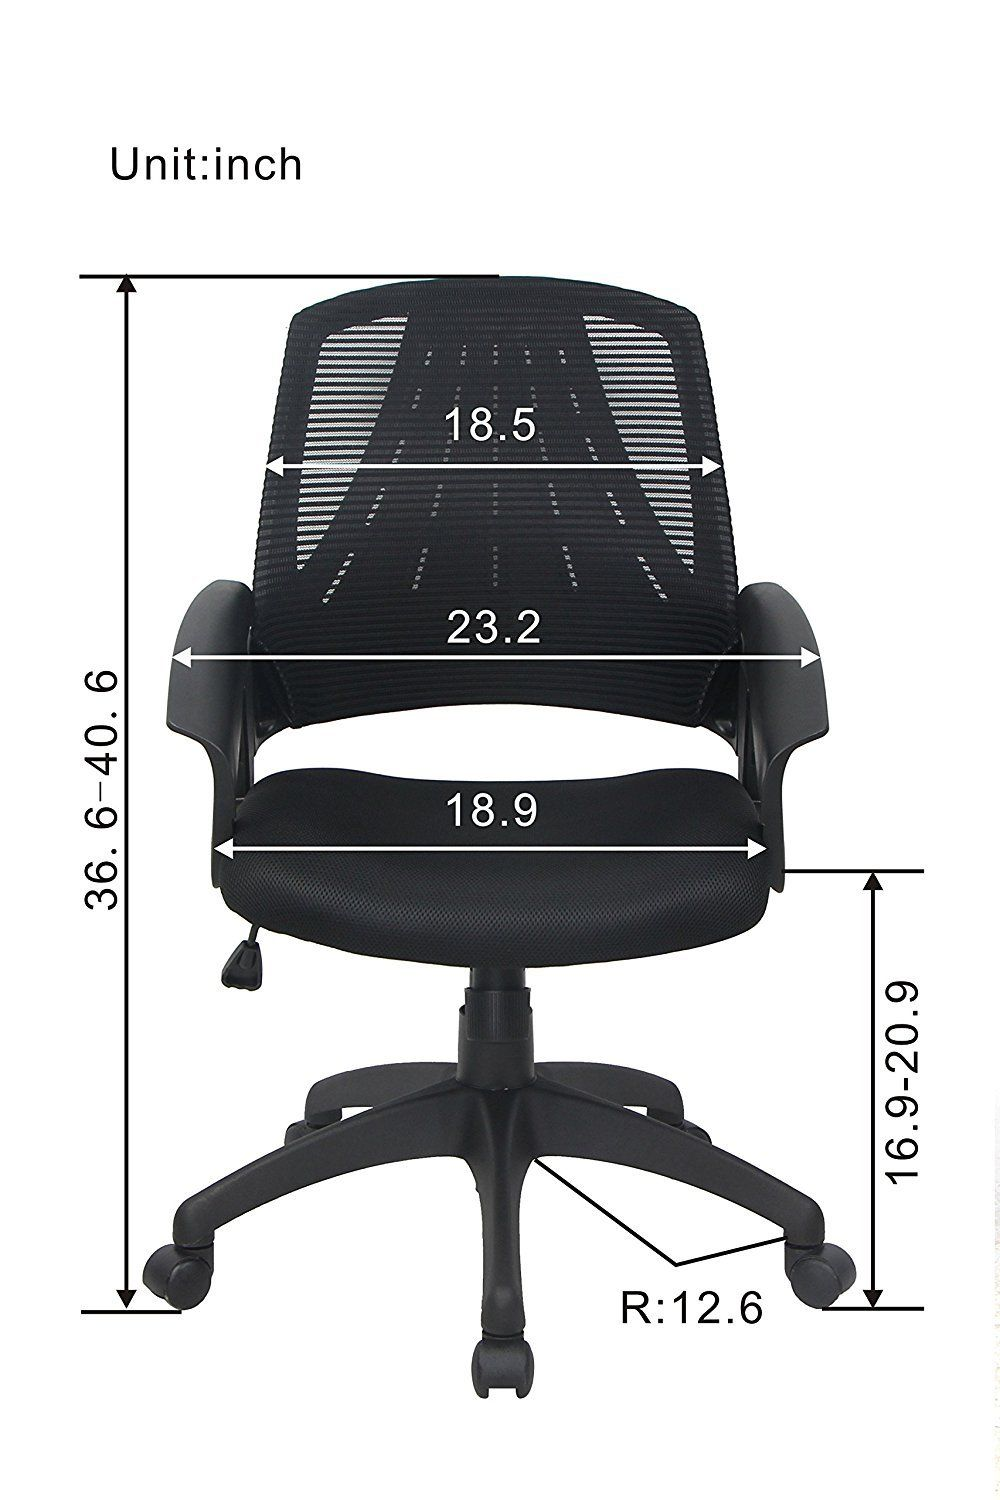 Bonum Mesh Adjustable Desk Office Chair Midback Fabric Swivel Home Task Chair With Padded Seat And Armrest Black You Office Chair Adjustable Desk Task Chair